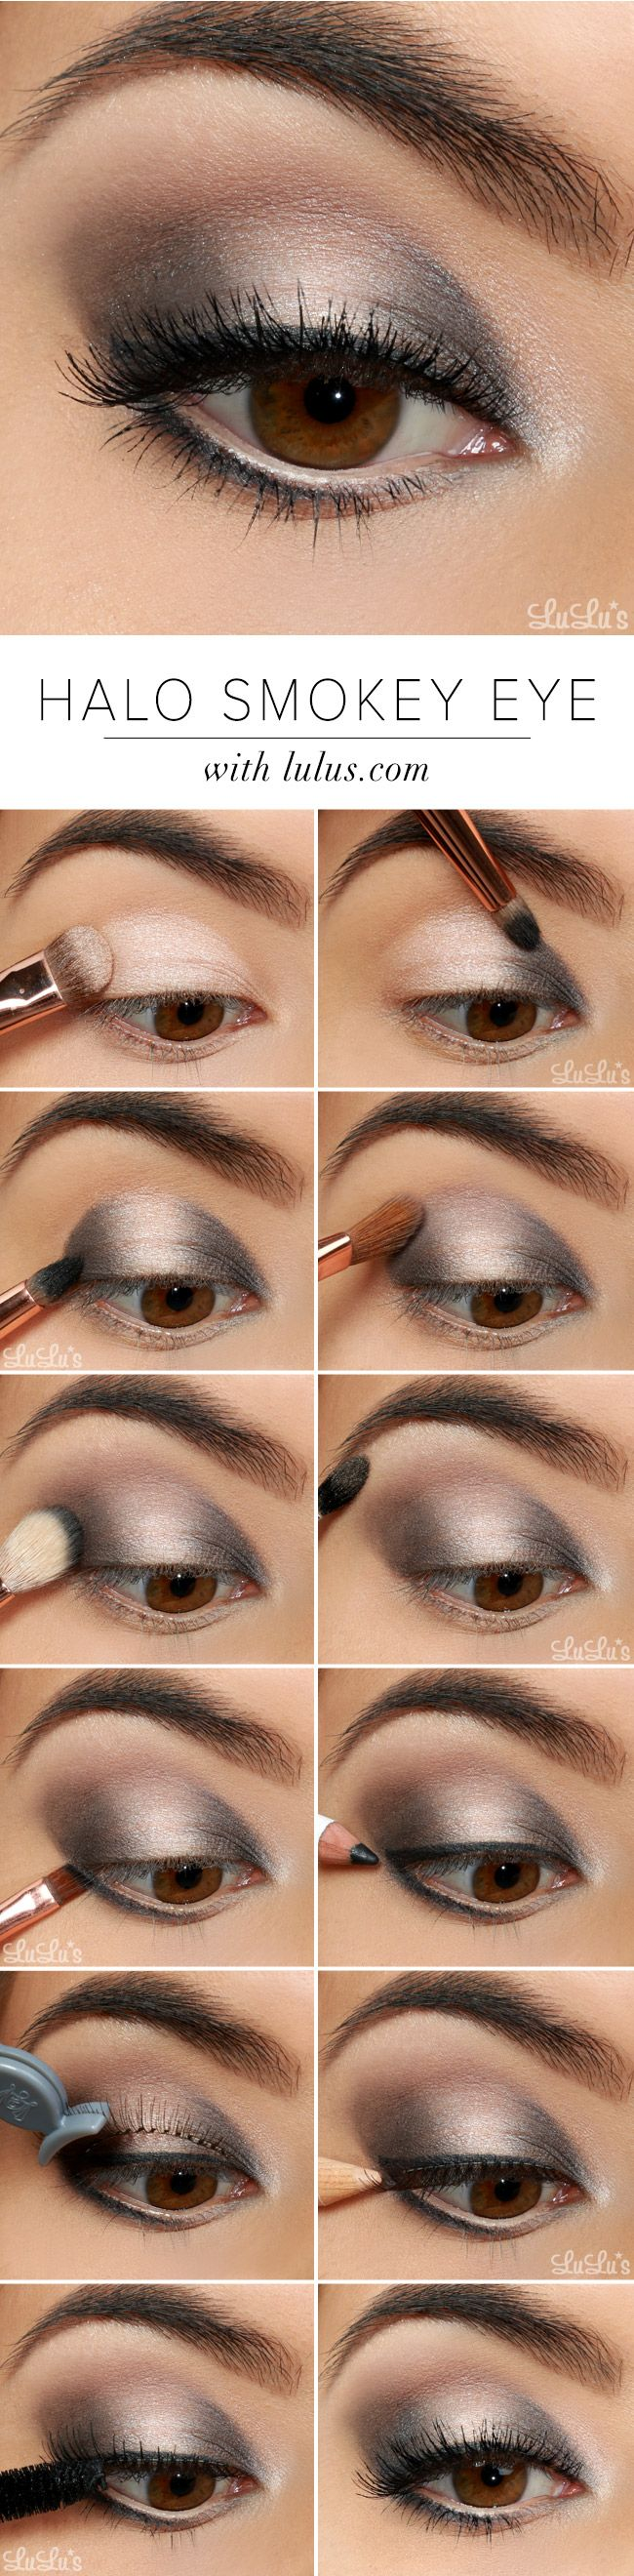 Lulus How-To: Halo Smokey Eye Shadow Tutorial at LuLus.com!